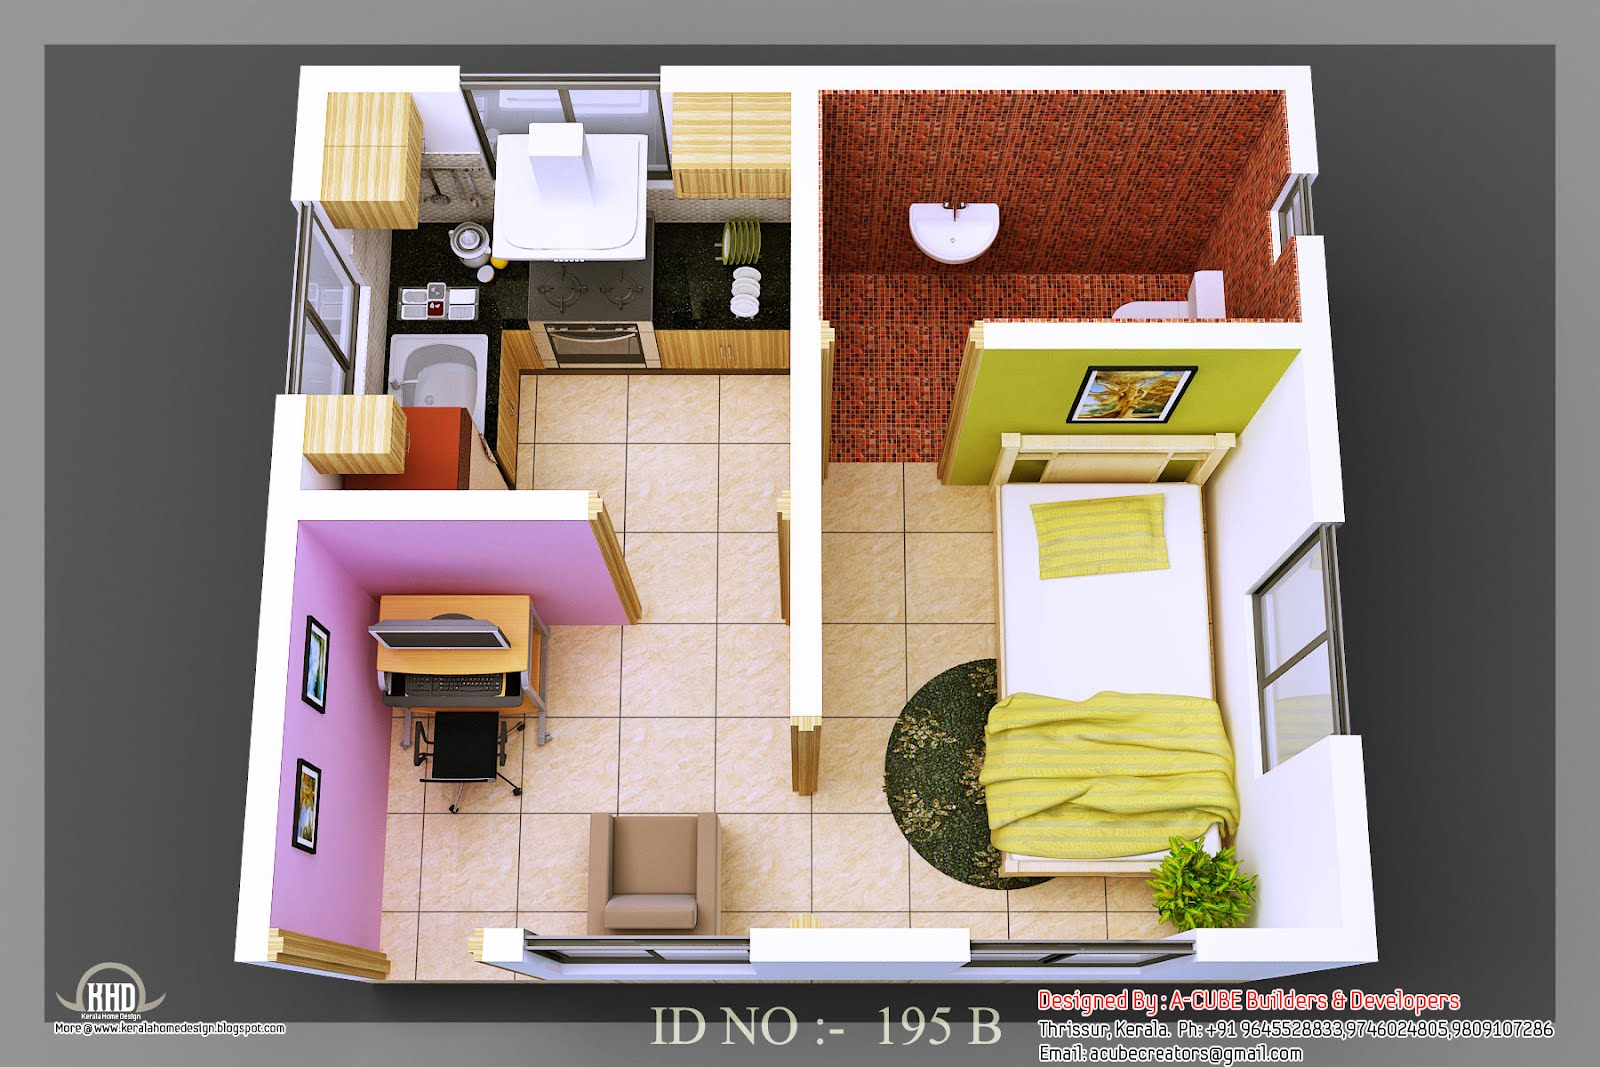 3d isometric views of small house plans kerala home design and floor plans Home design architecture 3d